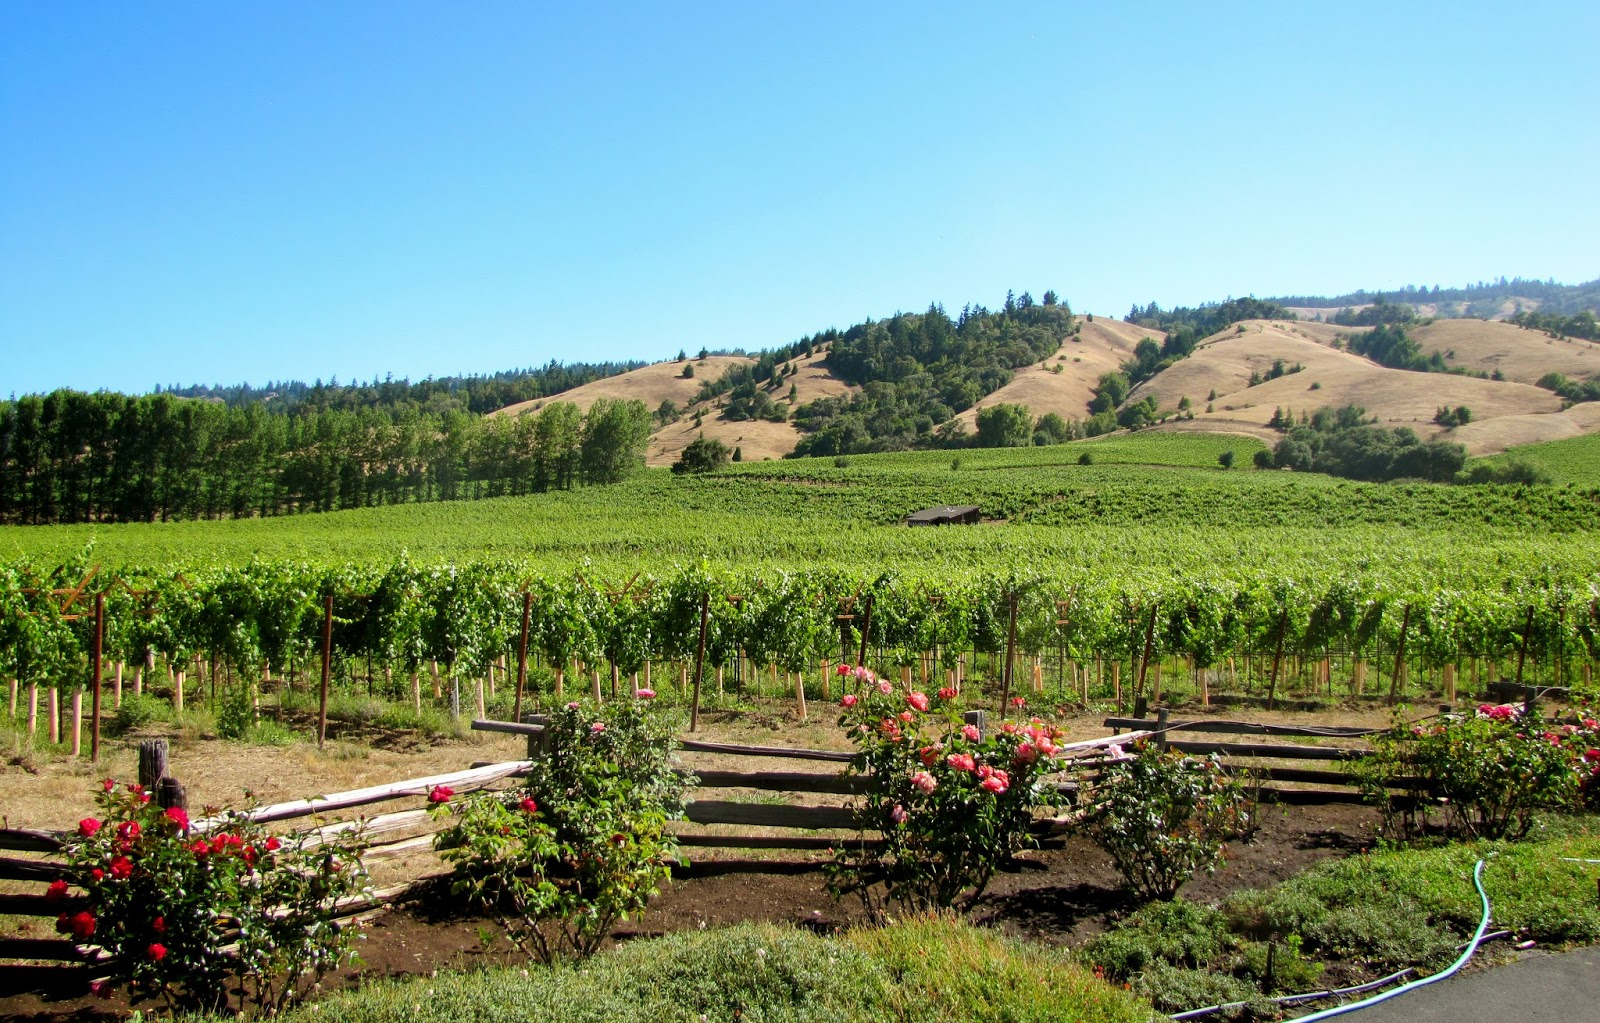 Mendocino County Wine & Winegrapes - - Navarro Vineyards